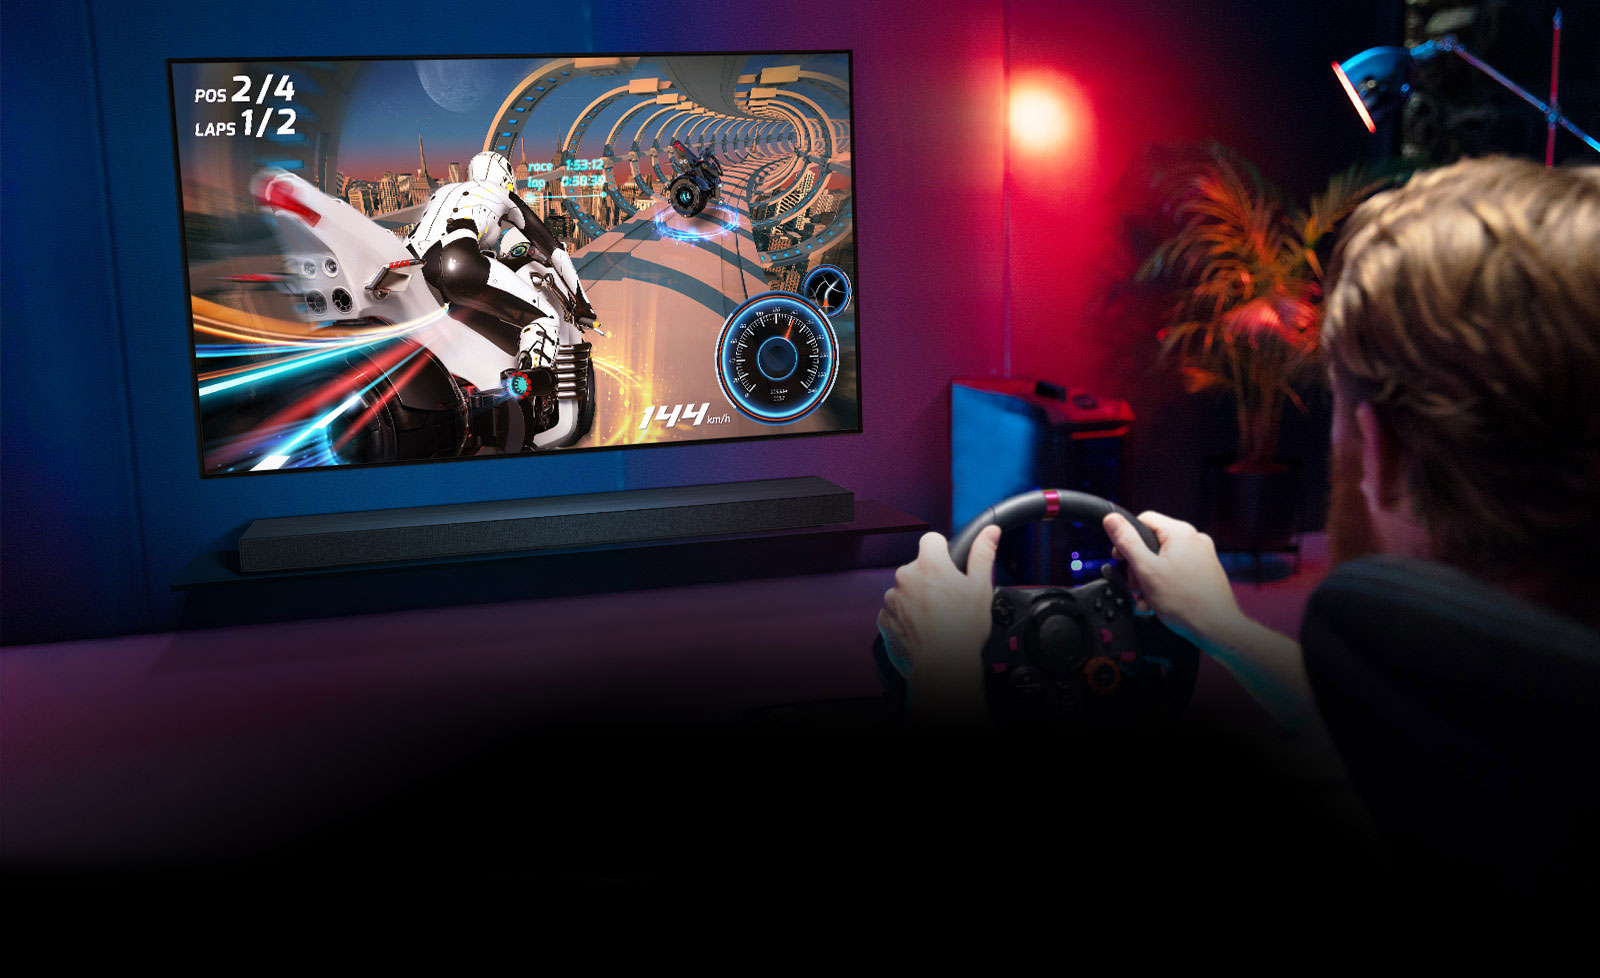 Man sitting on a racer gaming chair, holding a racing wheel while playing a racing game on a TV screen